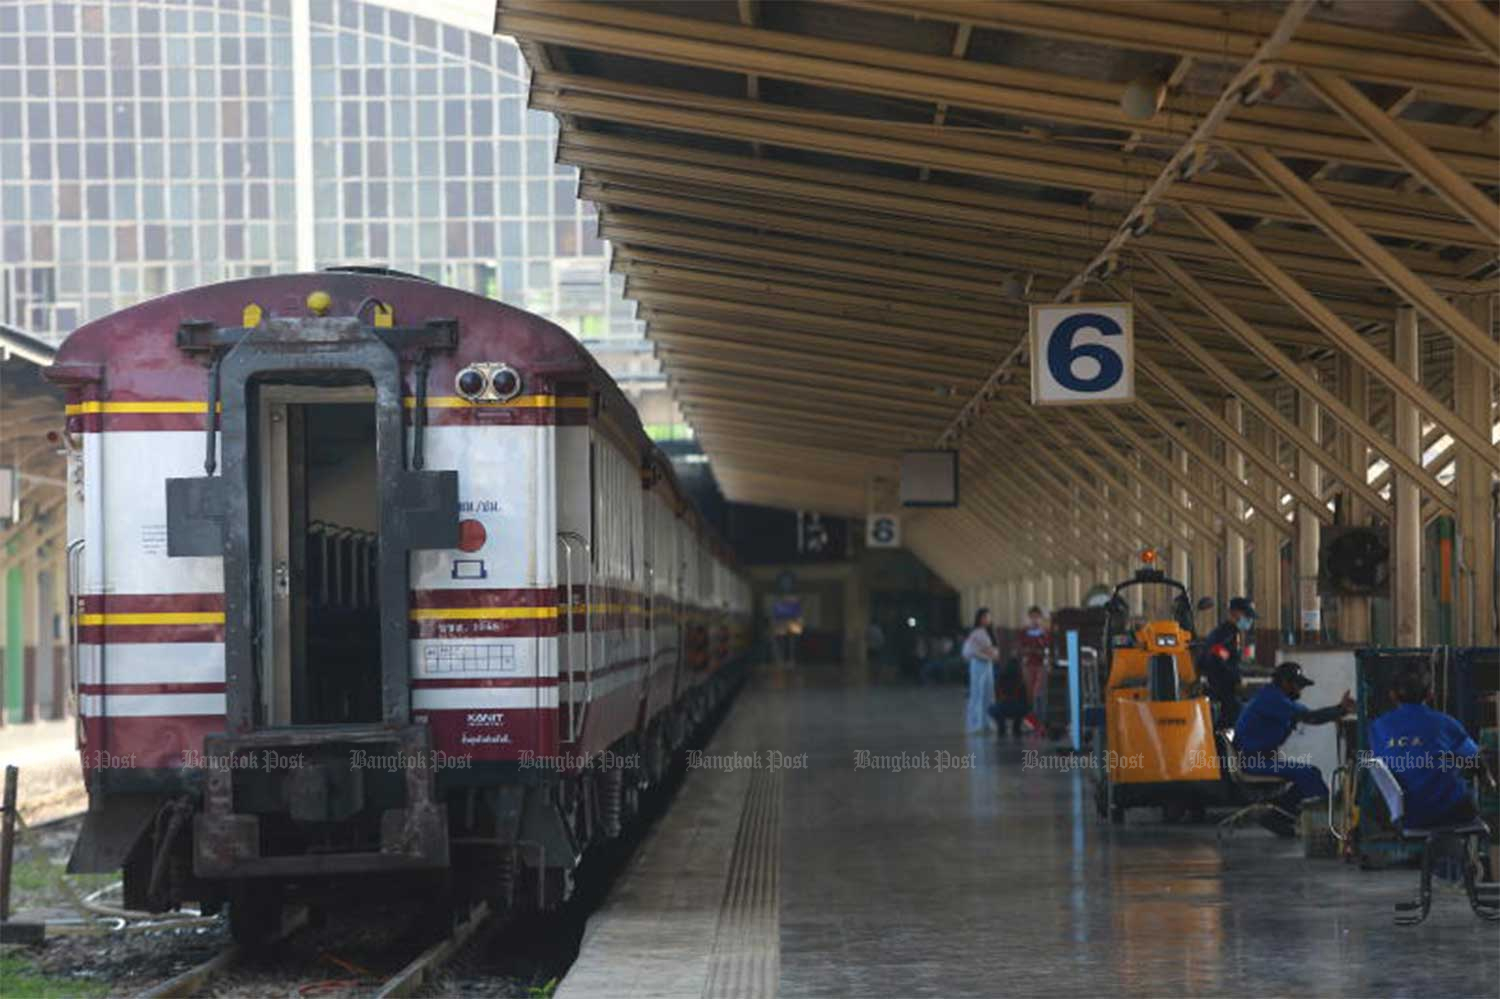 14 rail services resume Monday as virus curbs ease